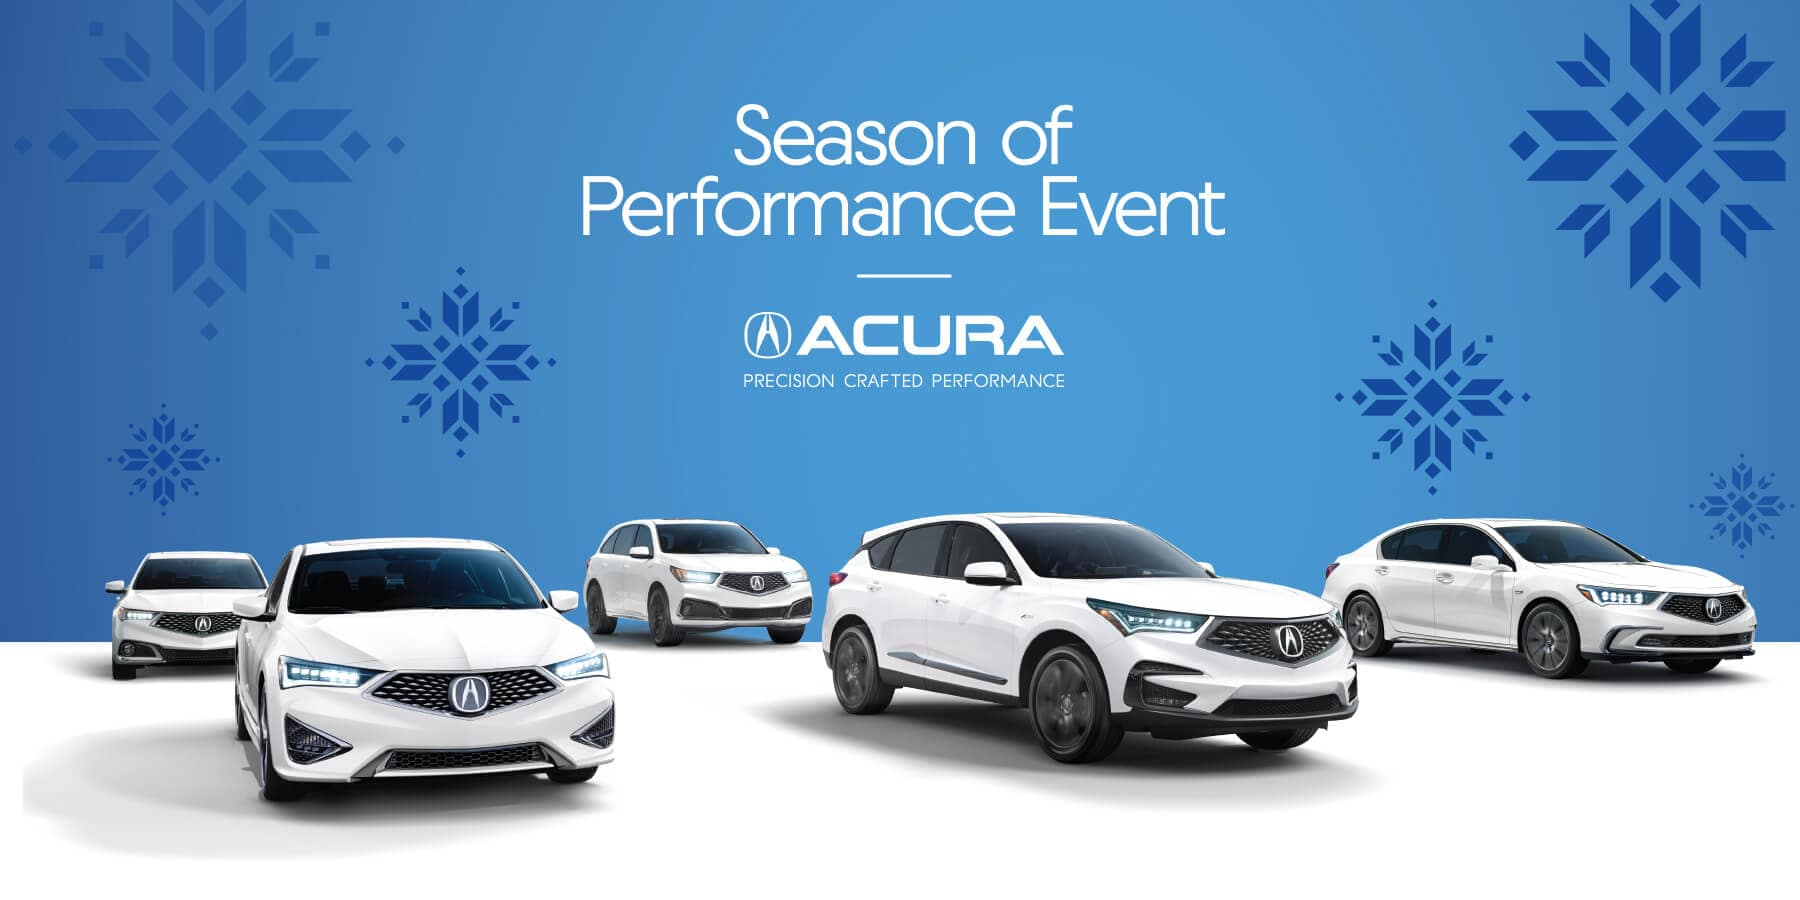 2019 Acura Season of Performance Event at Your Chicagoland Acura Dealers